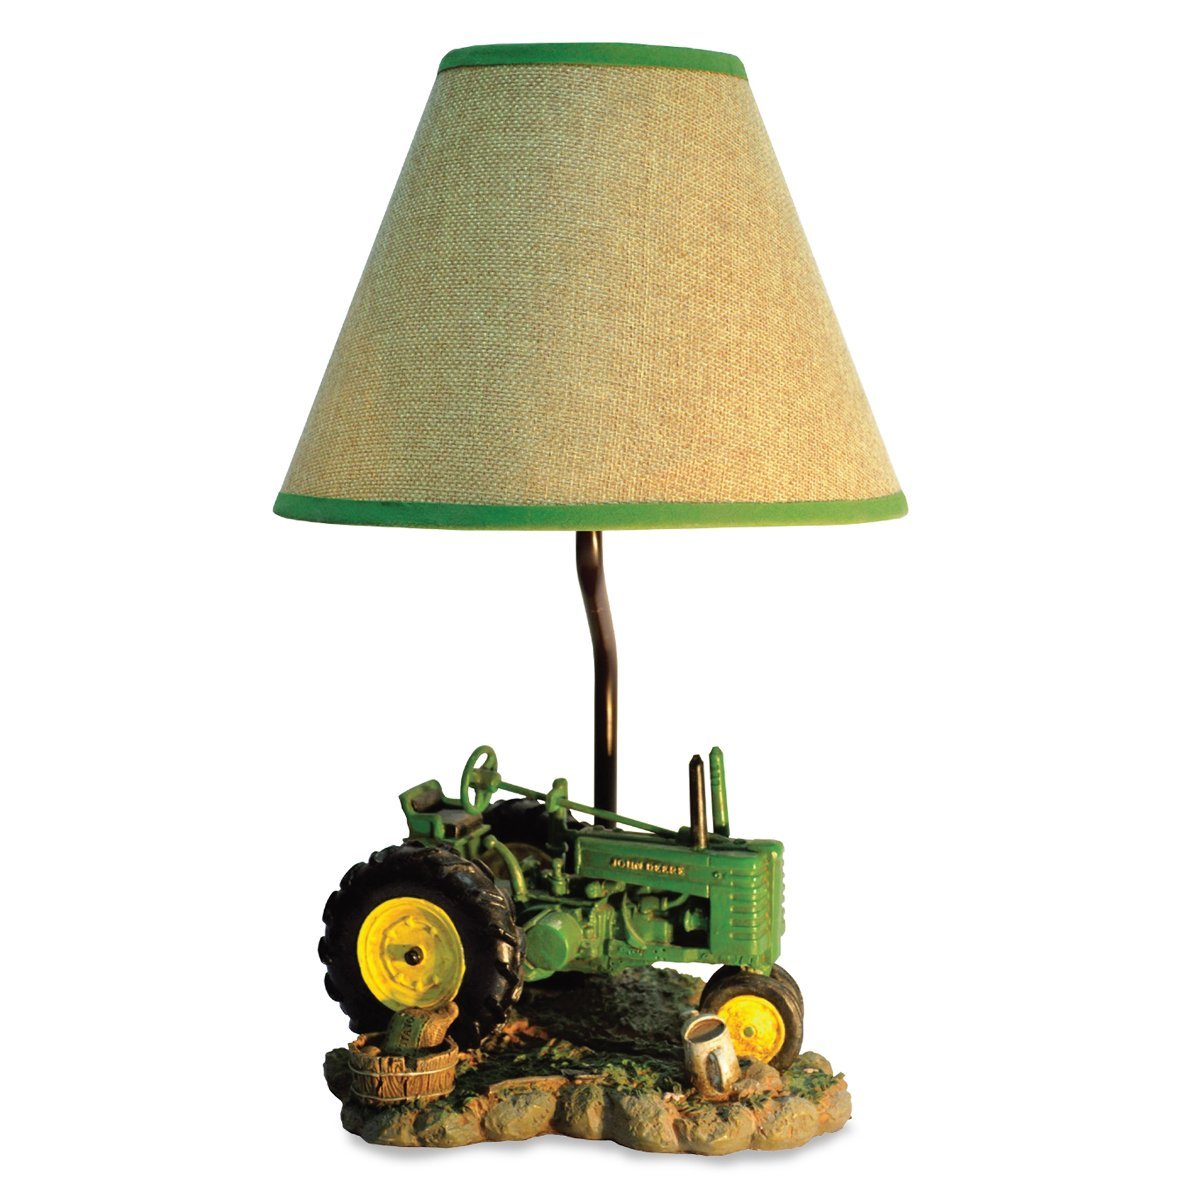 Tractor Theme Accessories For Baby To Kids John Deere Lamp